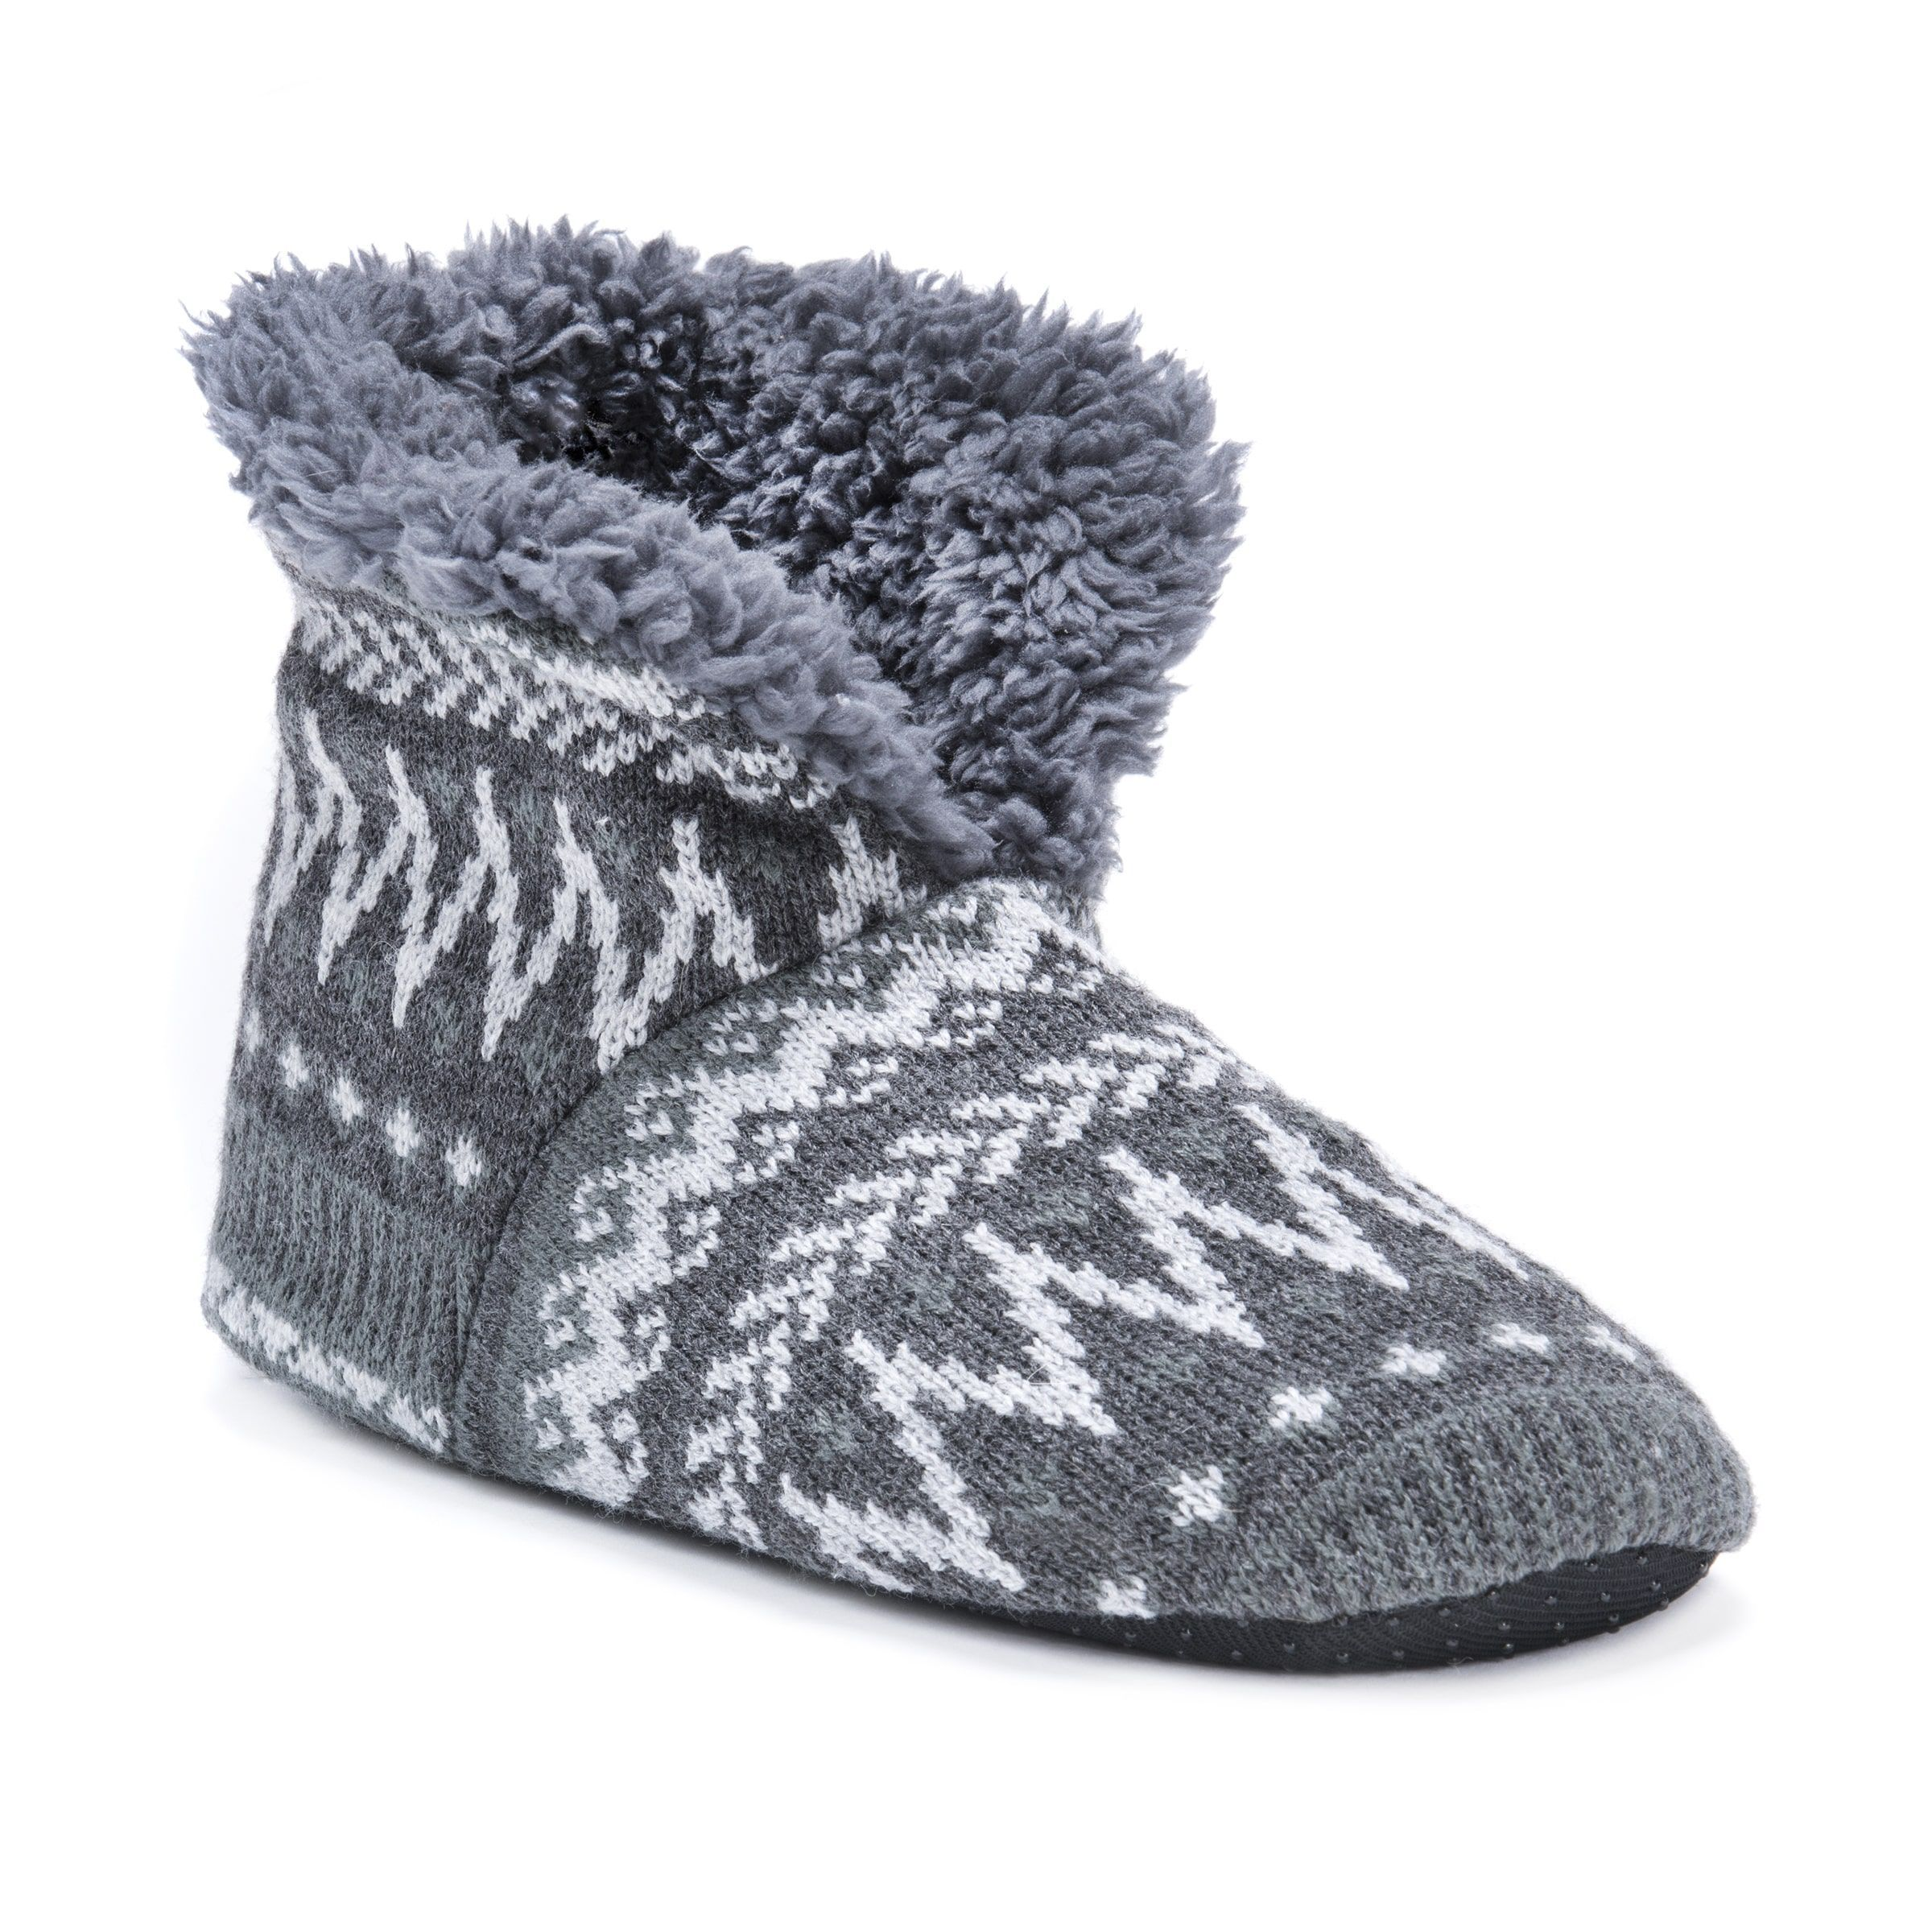 115320a8ad4a Muk luks mens slipper booties shoes pinterest mens slippers jpg 2400x2400 Mens  slipper boots